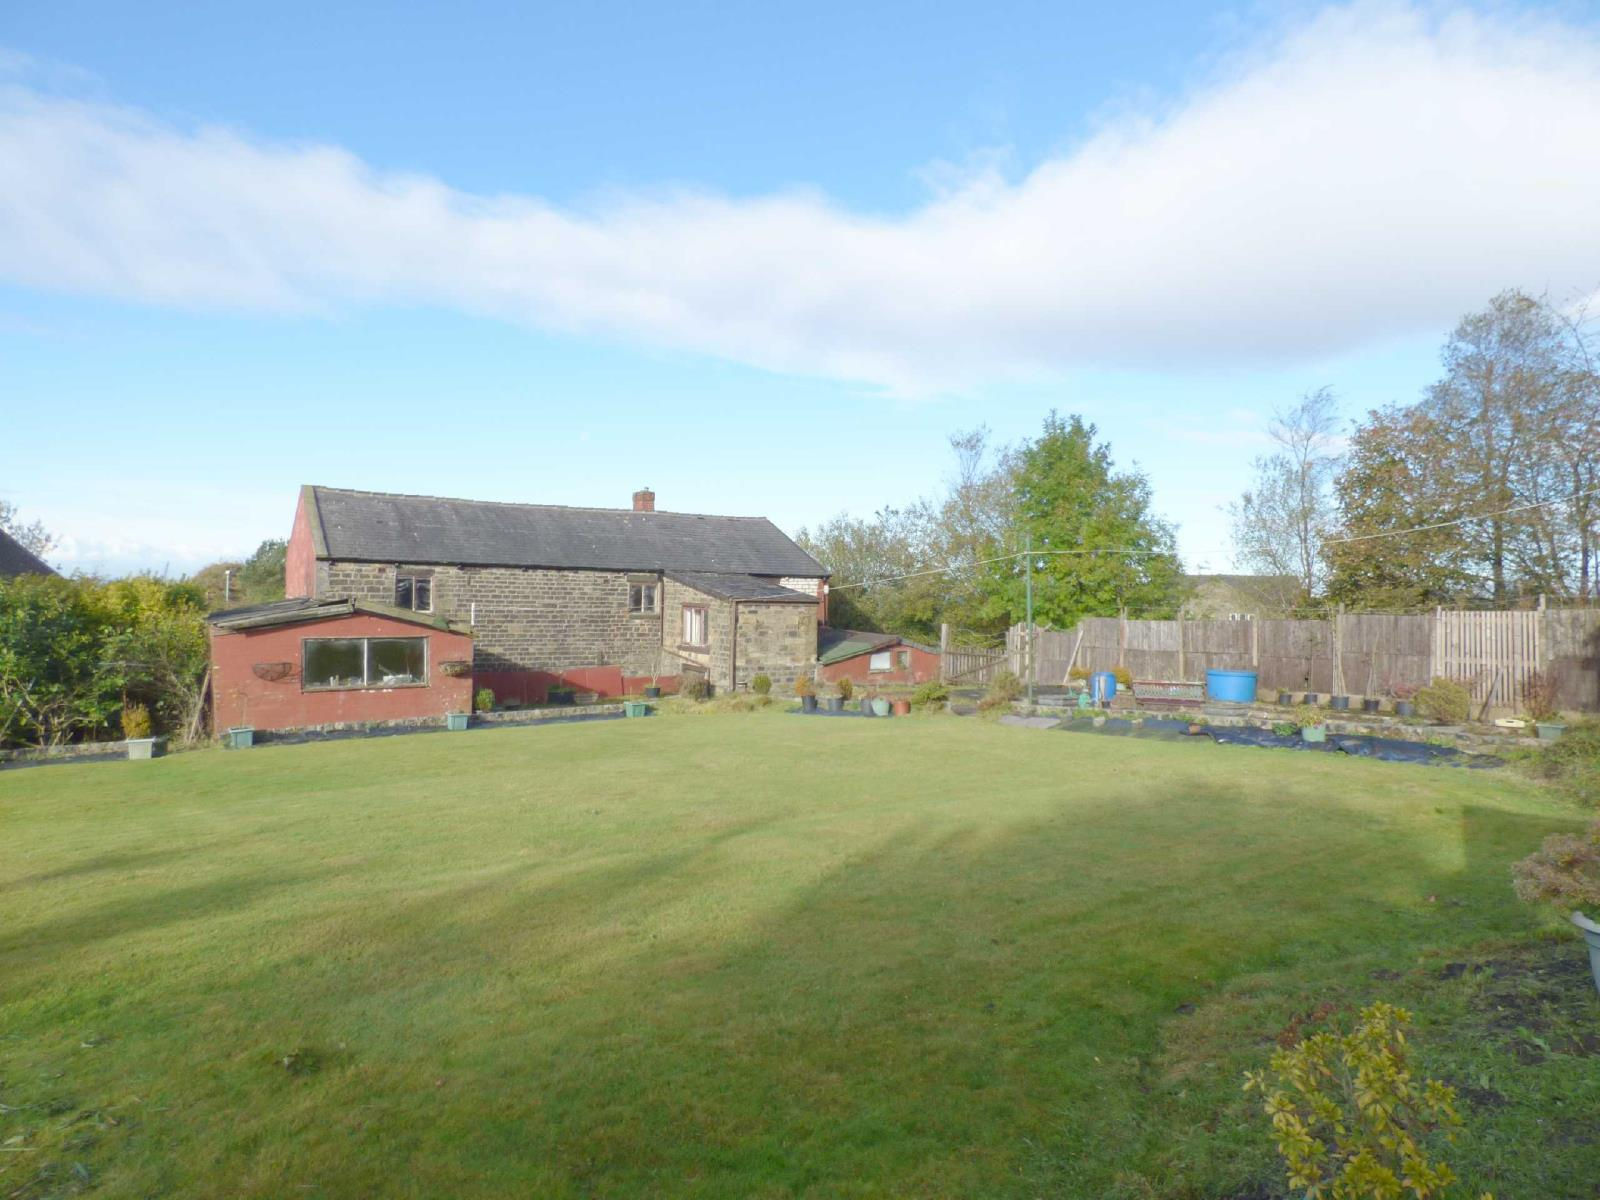 3 Bedrooms Detached House for sale in Ripponden Road, Moorside, Oldham, OL4